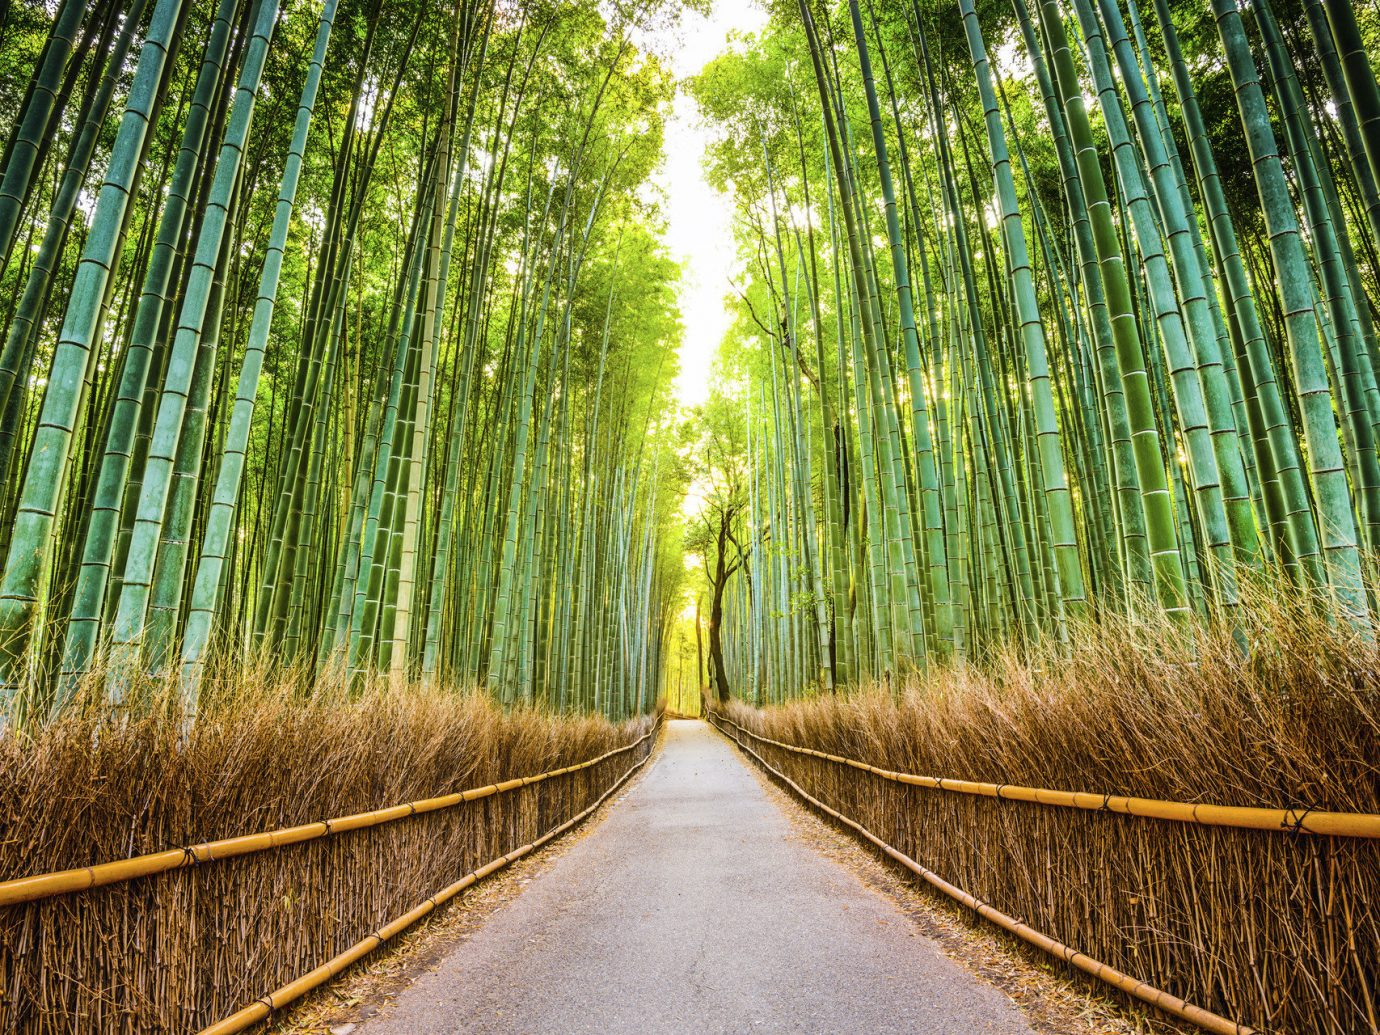 Offbeat Trip Ideas Fence habitat outdoor Nature bamboo plant tree green natural environment Forest sunlight leaf grass woodland woody plant field branch grass family autumn Jungle